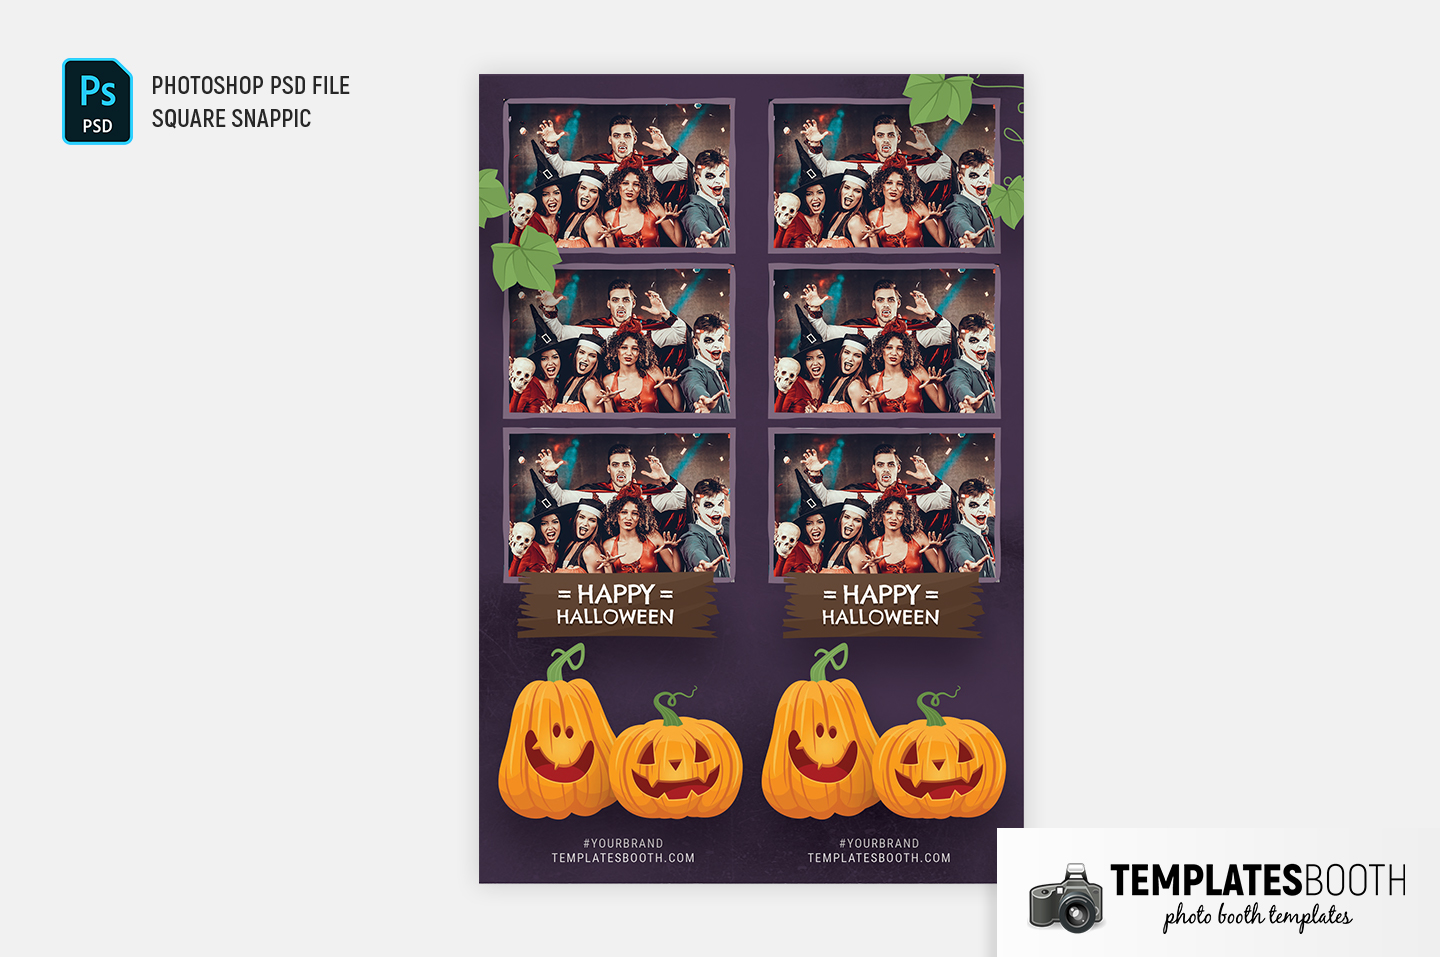 Purple Halloween Photo Booth Template (Snappic)